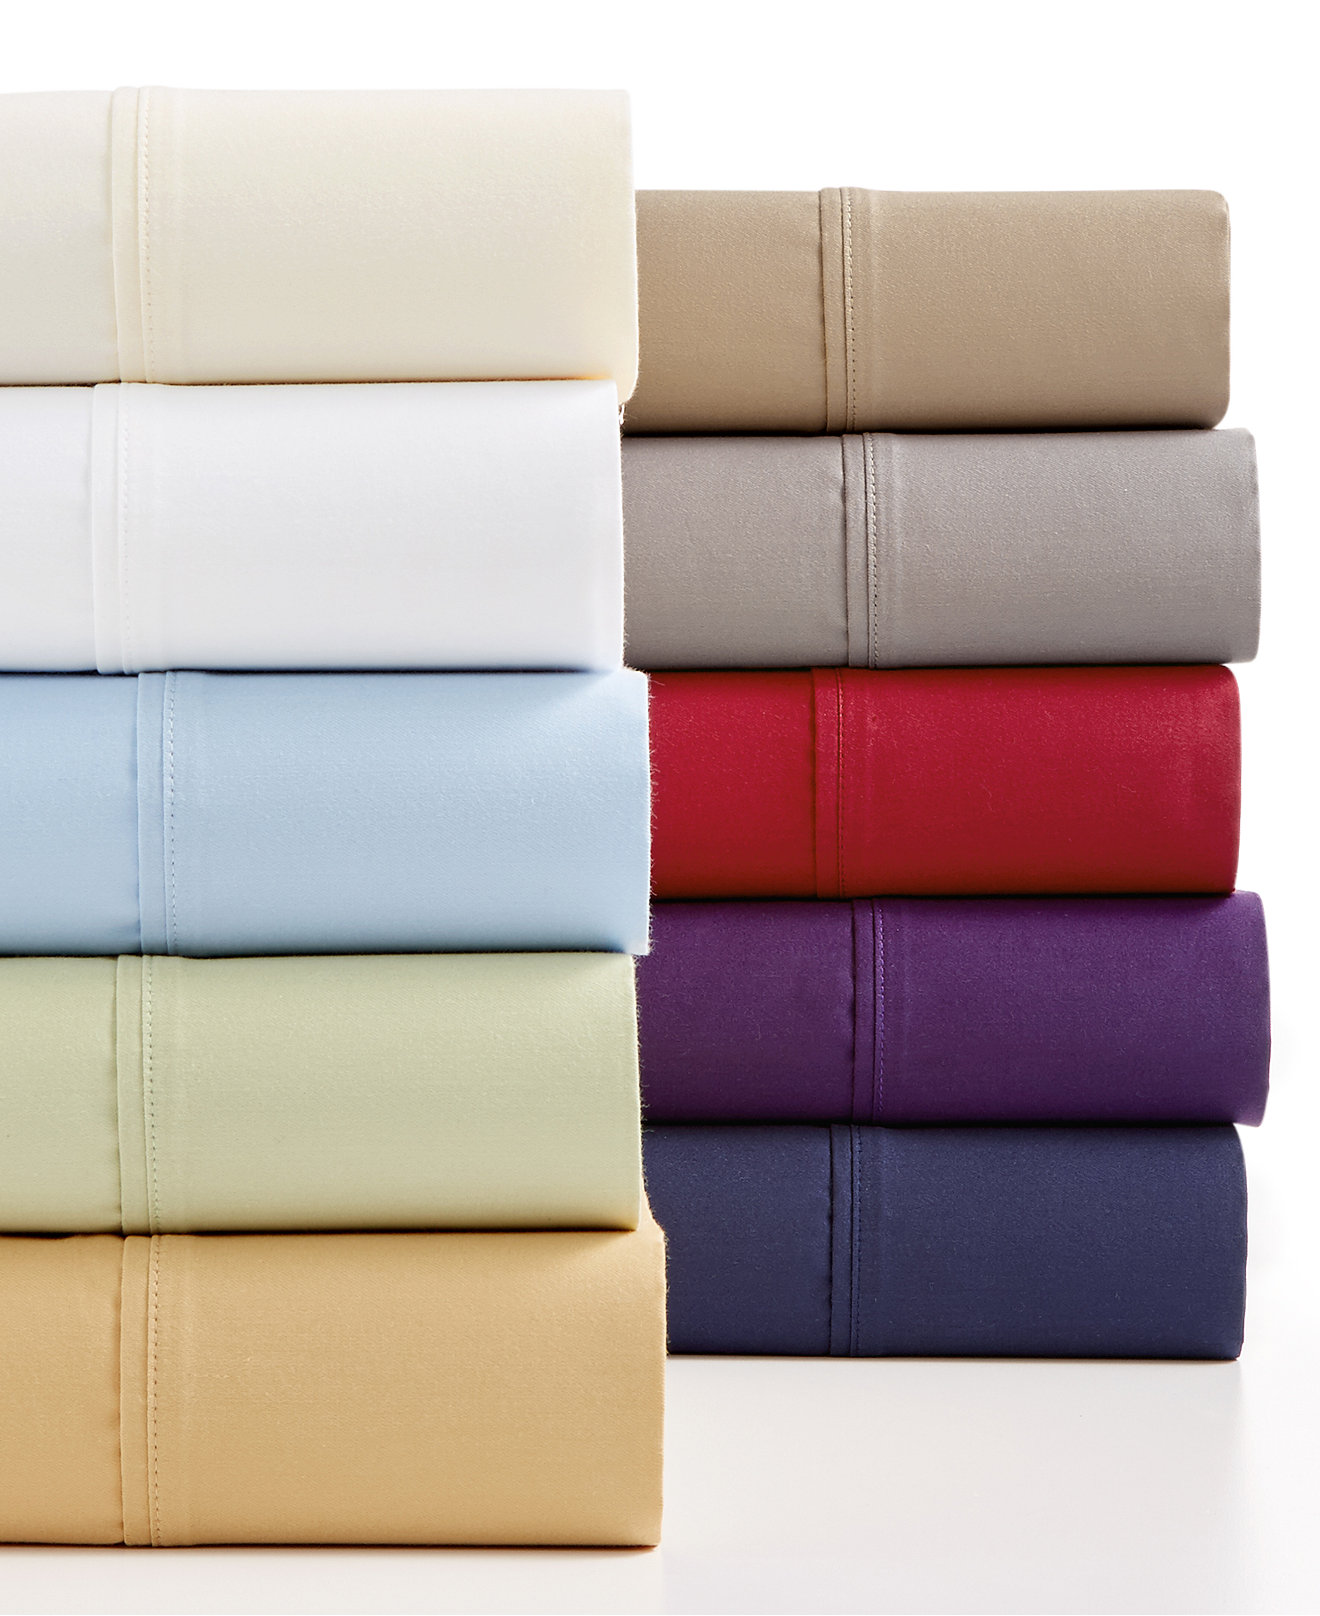 High thread count bed sheets - Larger View